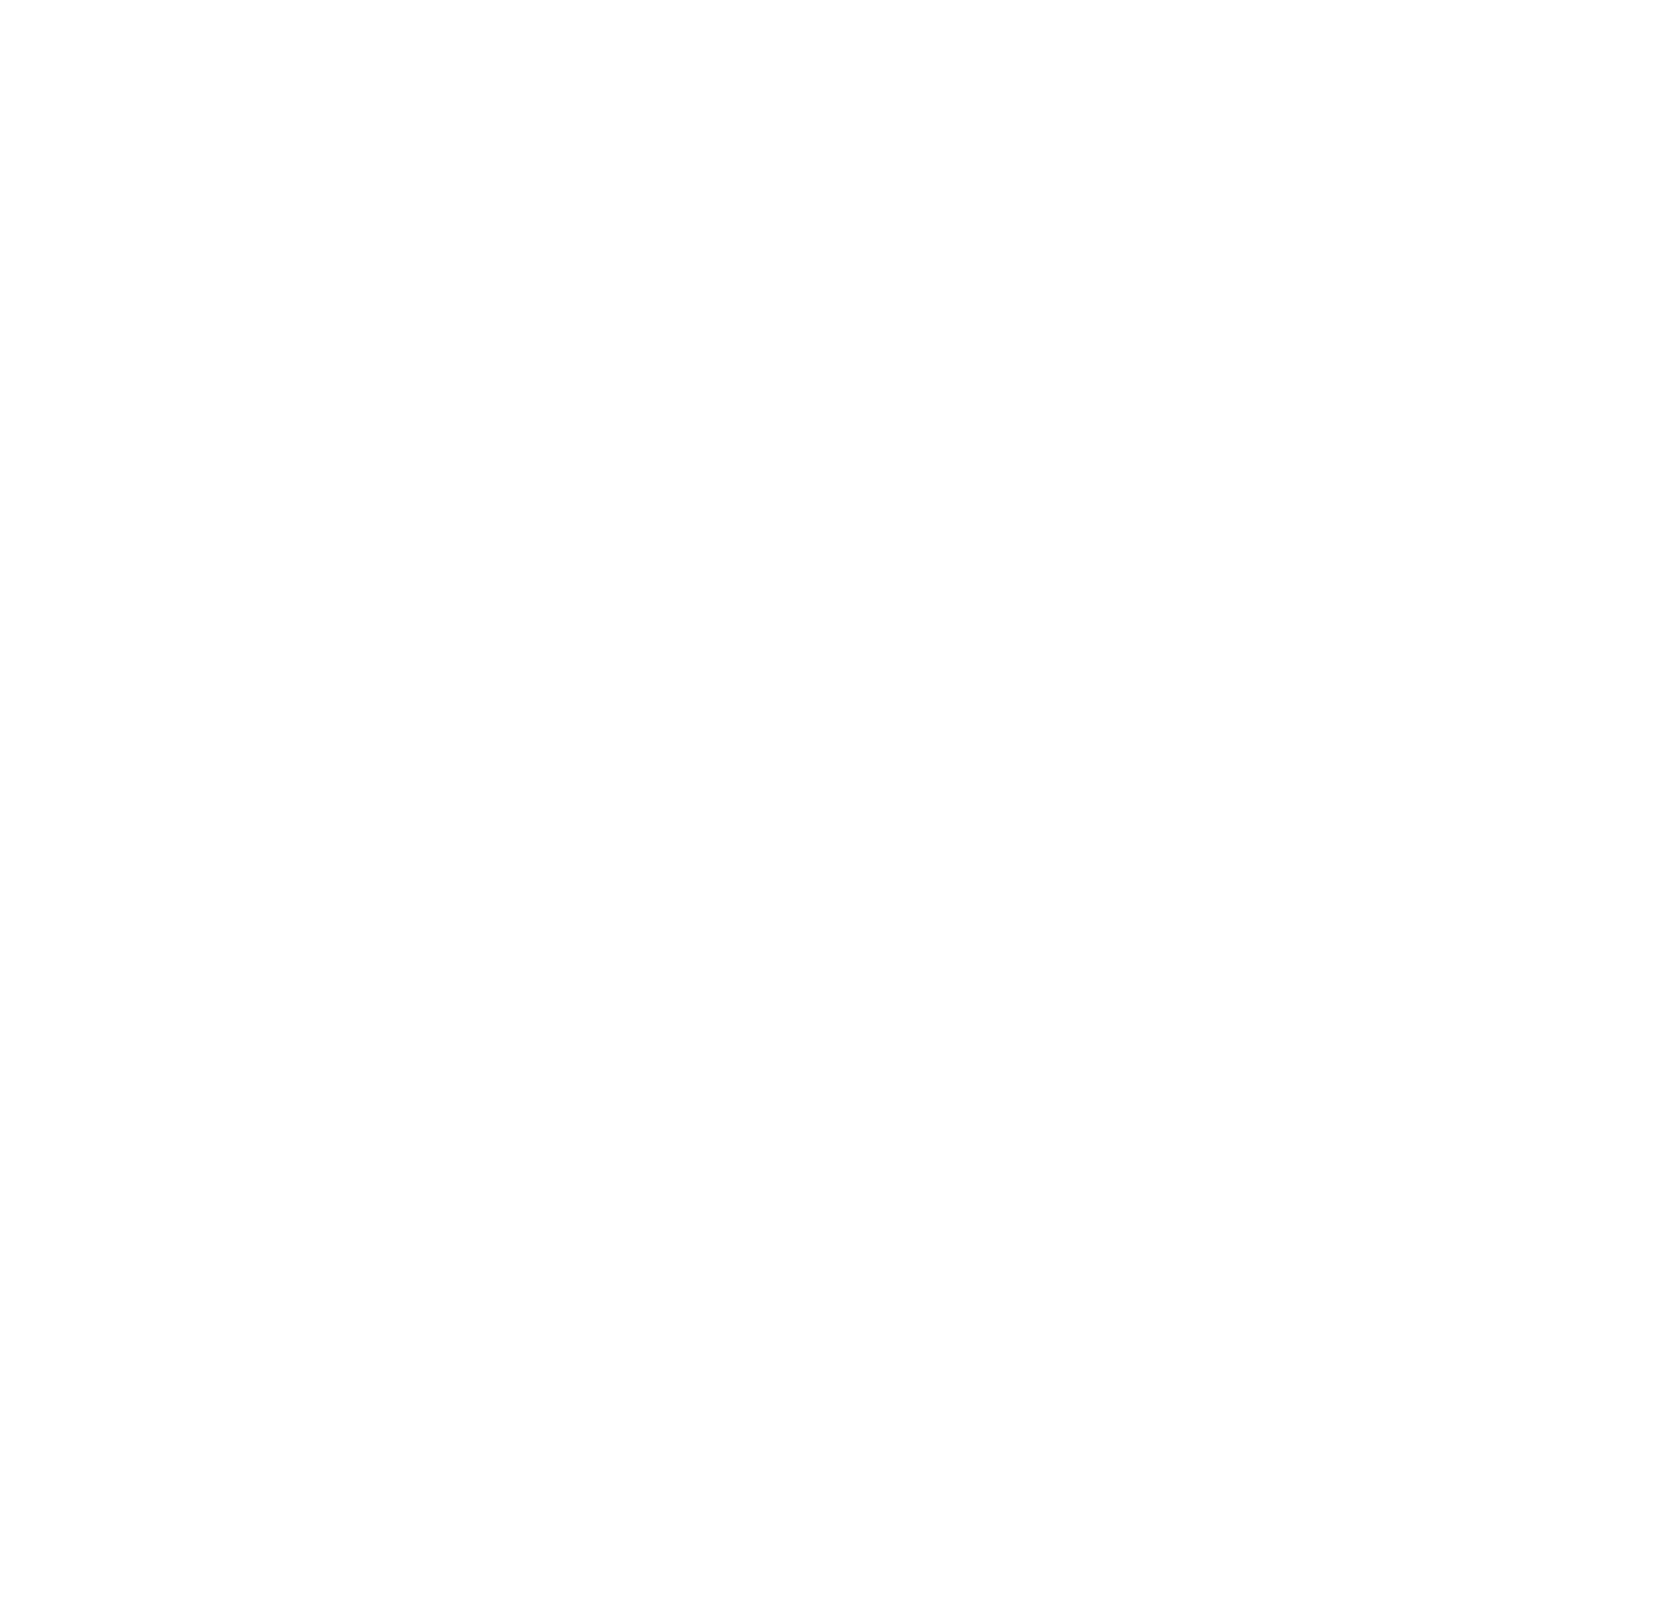 Agesci Lequile 1